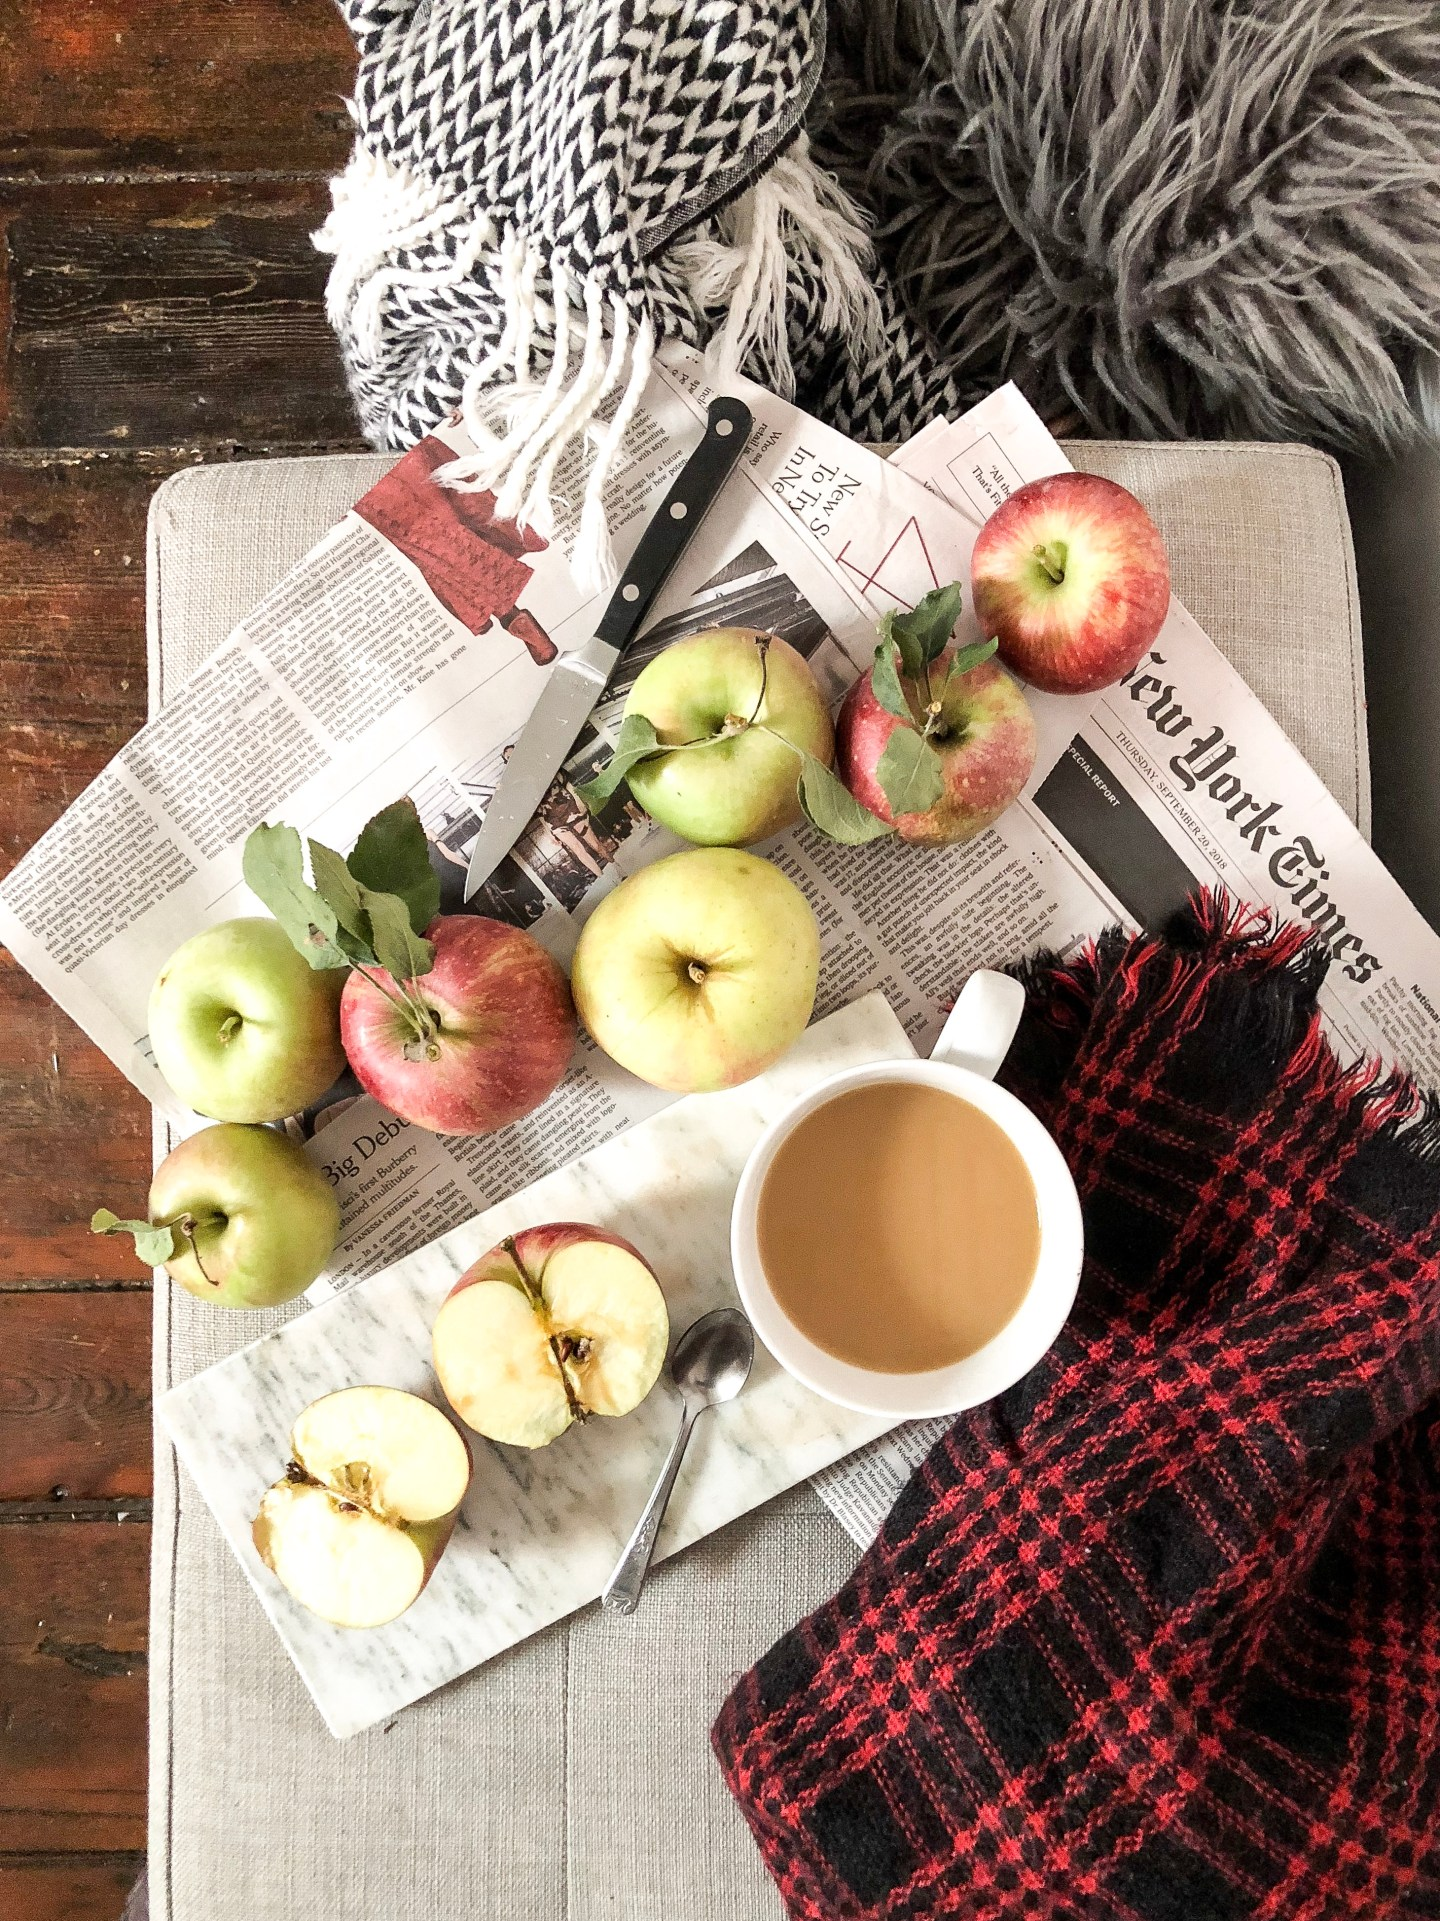 Lifestyle Blogger Chocolate and Lace shares her recipe for Warm Apple Crisp